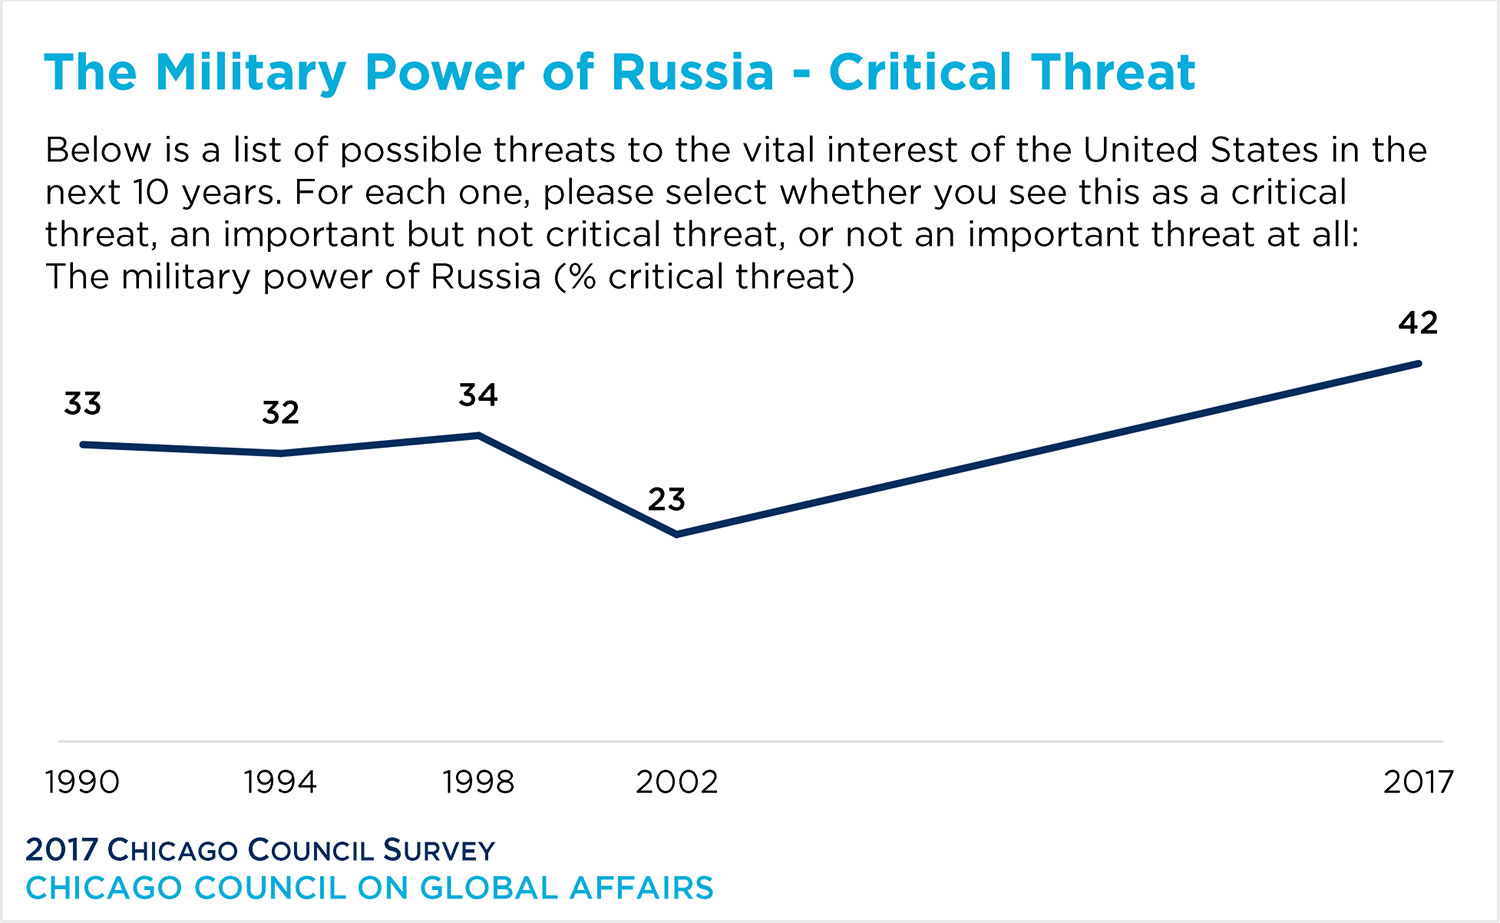 line graph show the military power of Russia as a critical threat